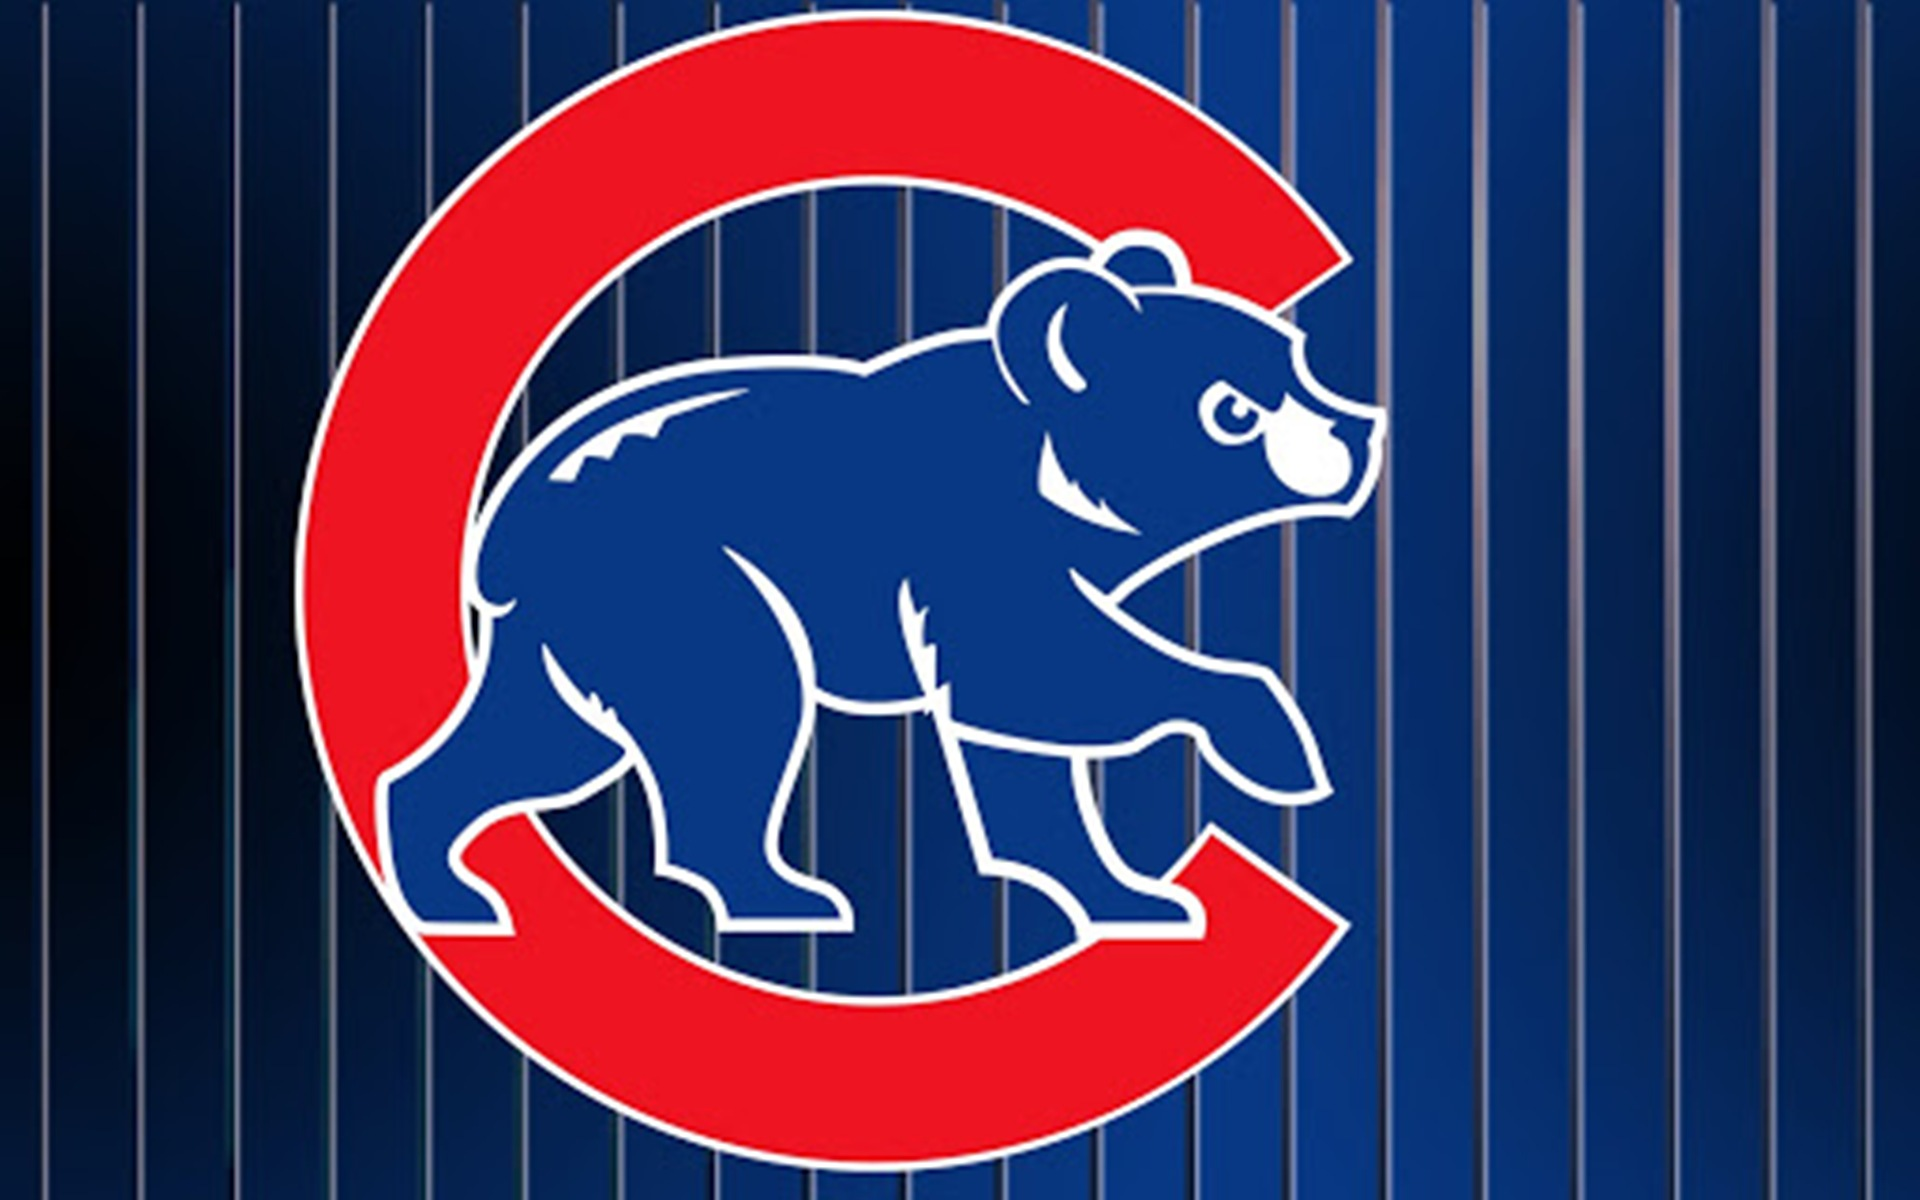 Chicago Cubs wallpaper 1920x1080 69228 1920x1200